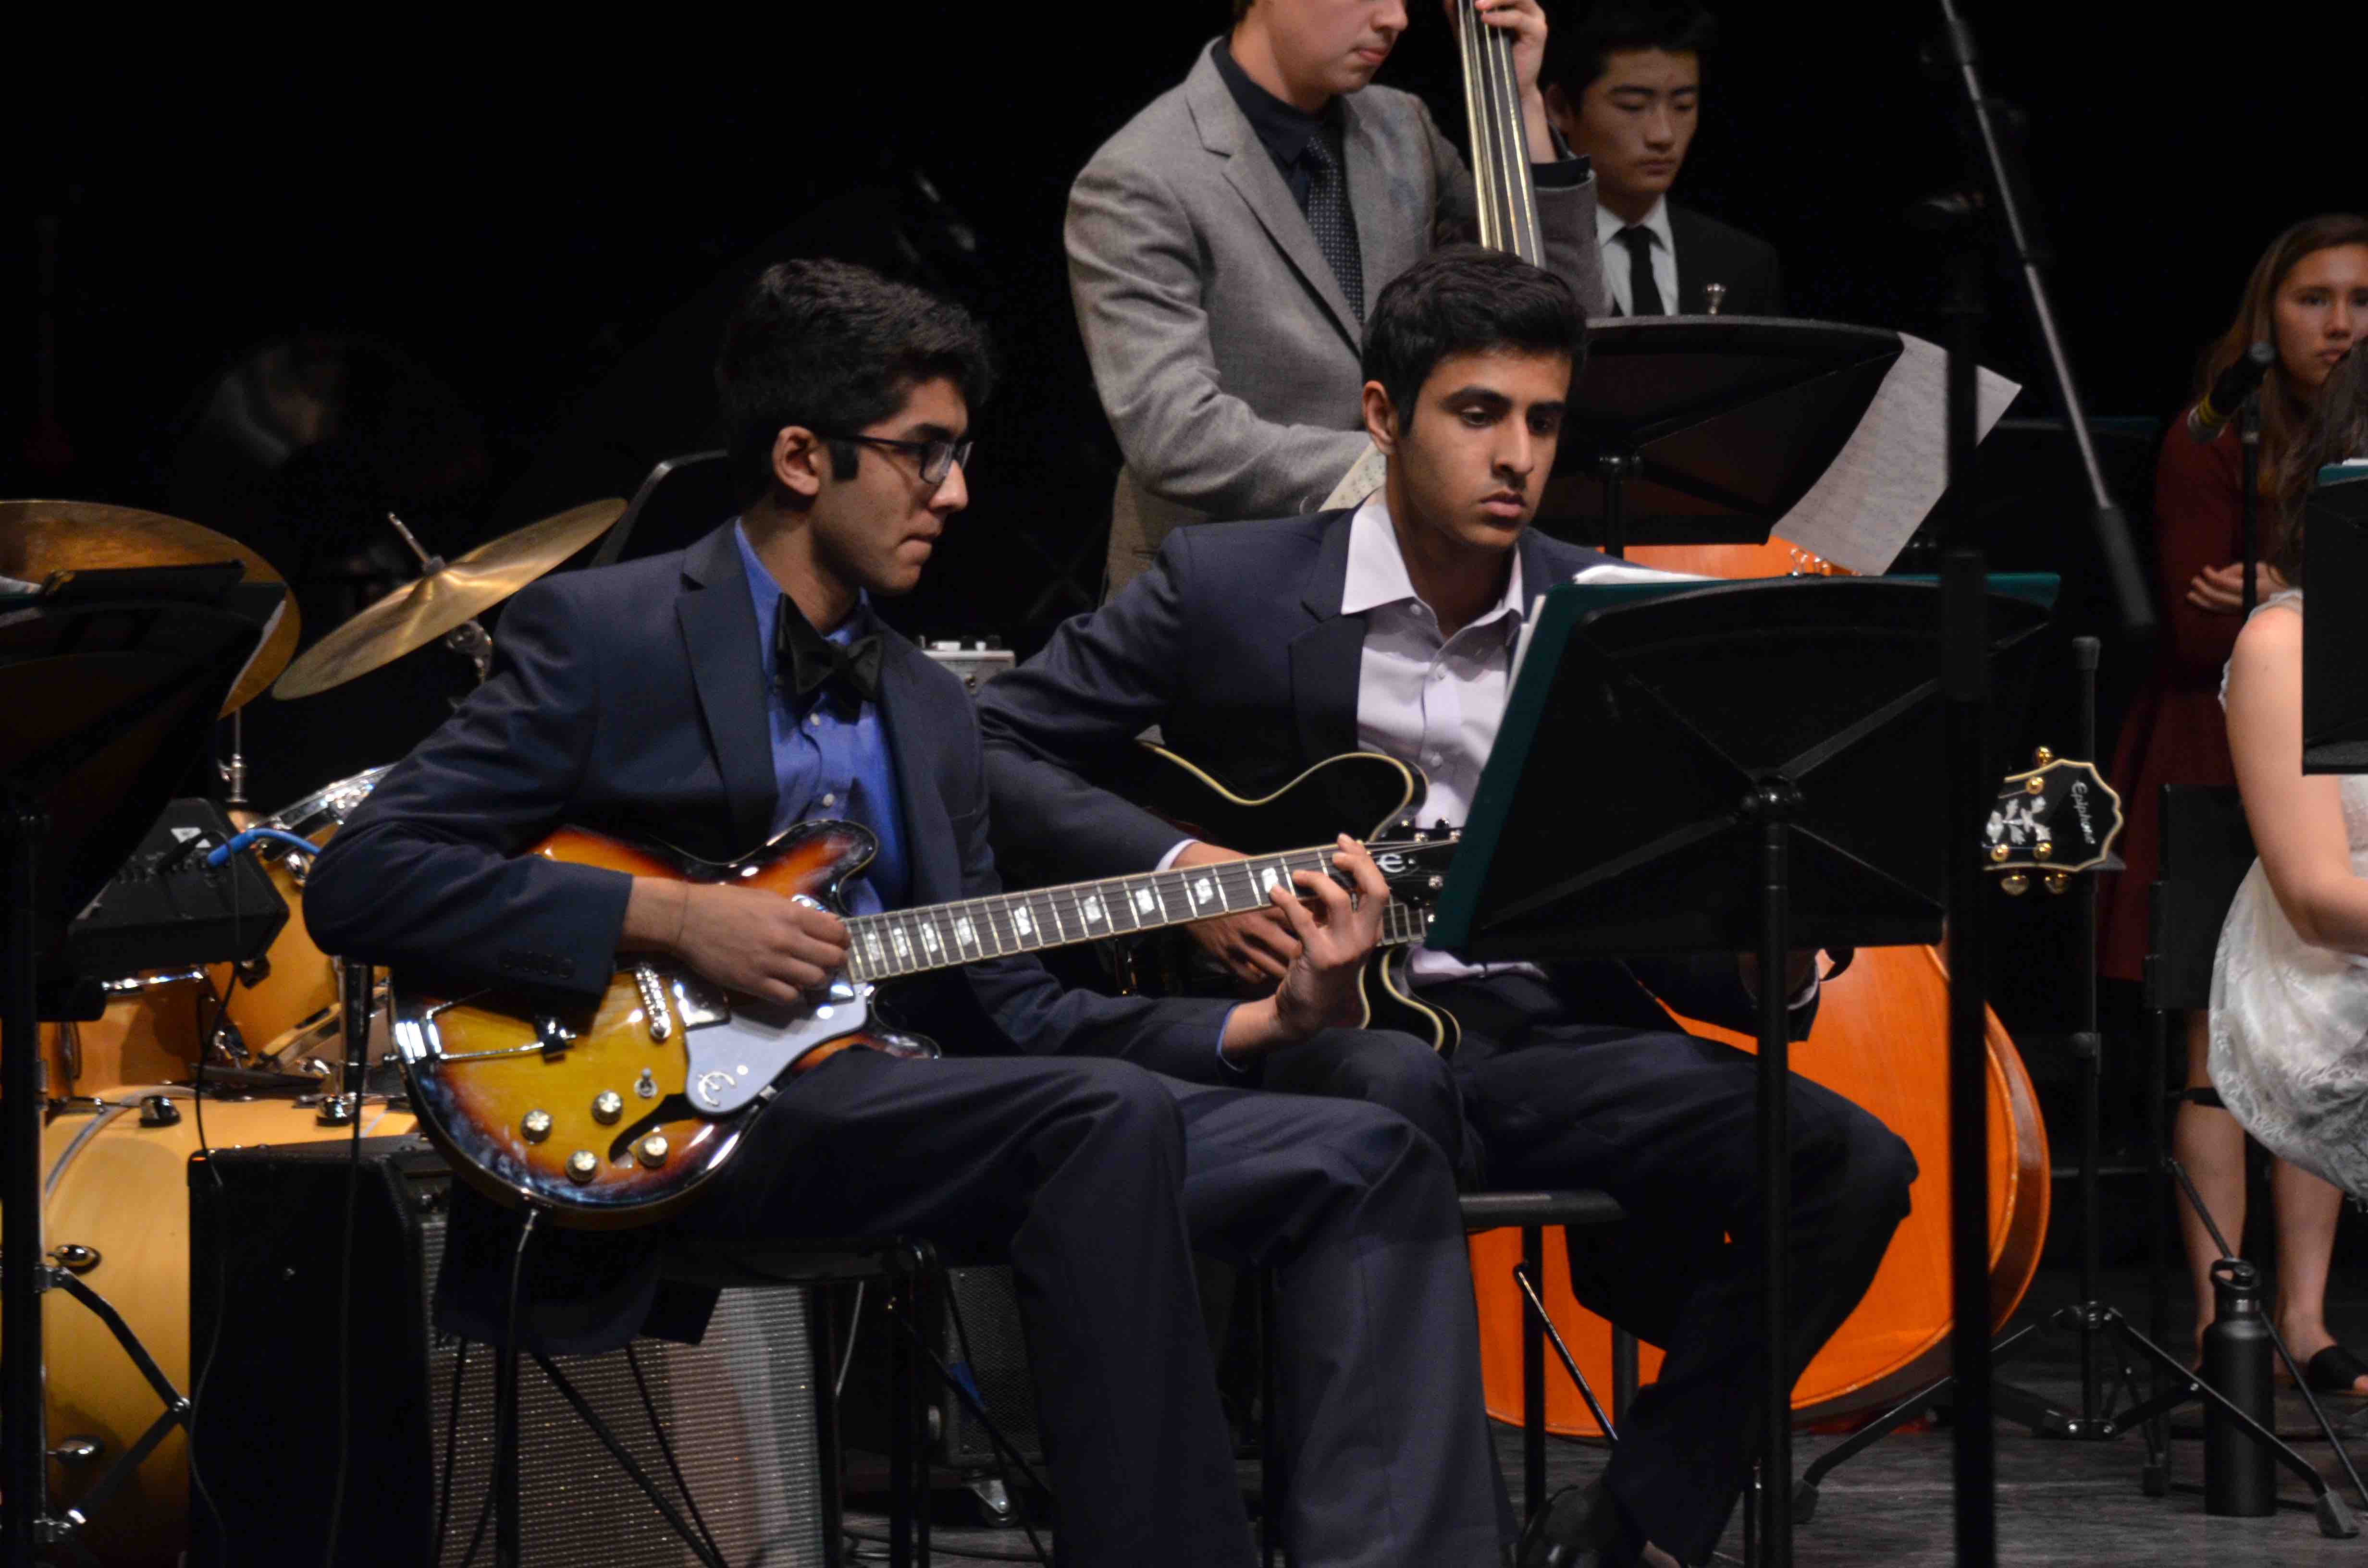 Aashish+Jain+%2812%29+and+Shekar+Ramaswamy+%2812%29+play+guitar+as+a+part+of+the+upper+school+Jazz+Band.+The+Winter+Concert+took+place+on+January+13+at+the+Mexican+Heritage+Theater.